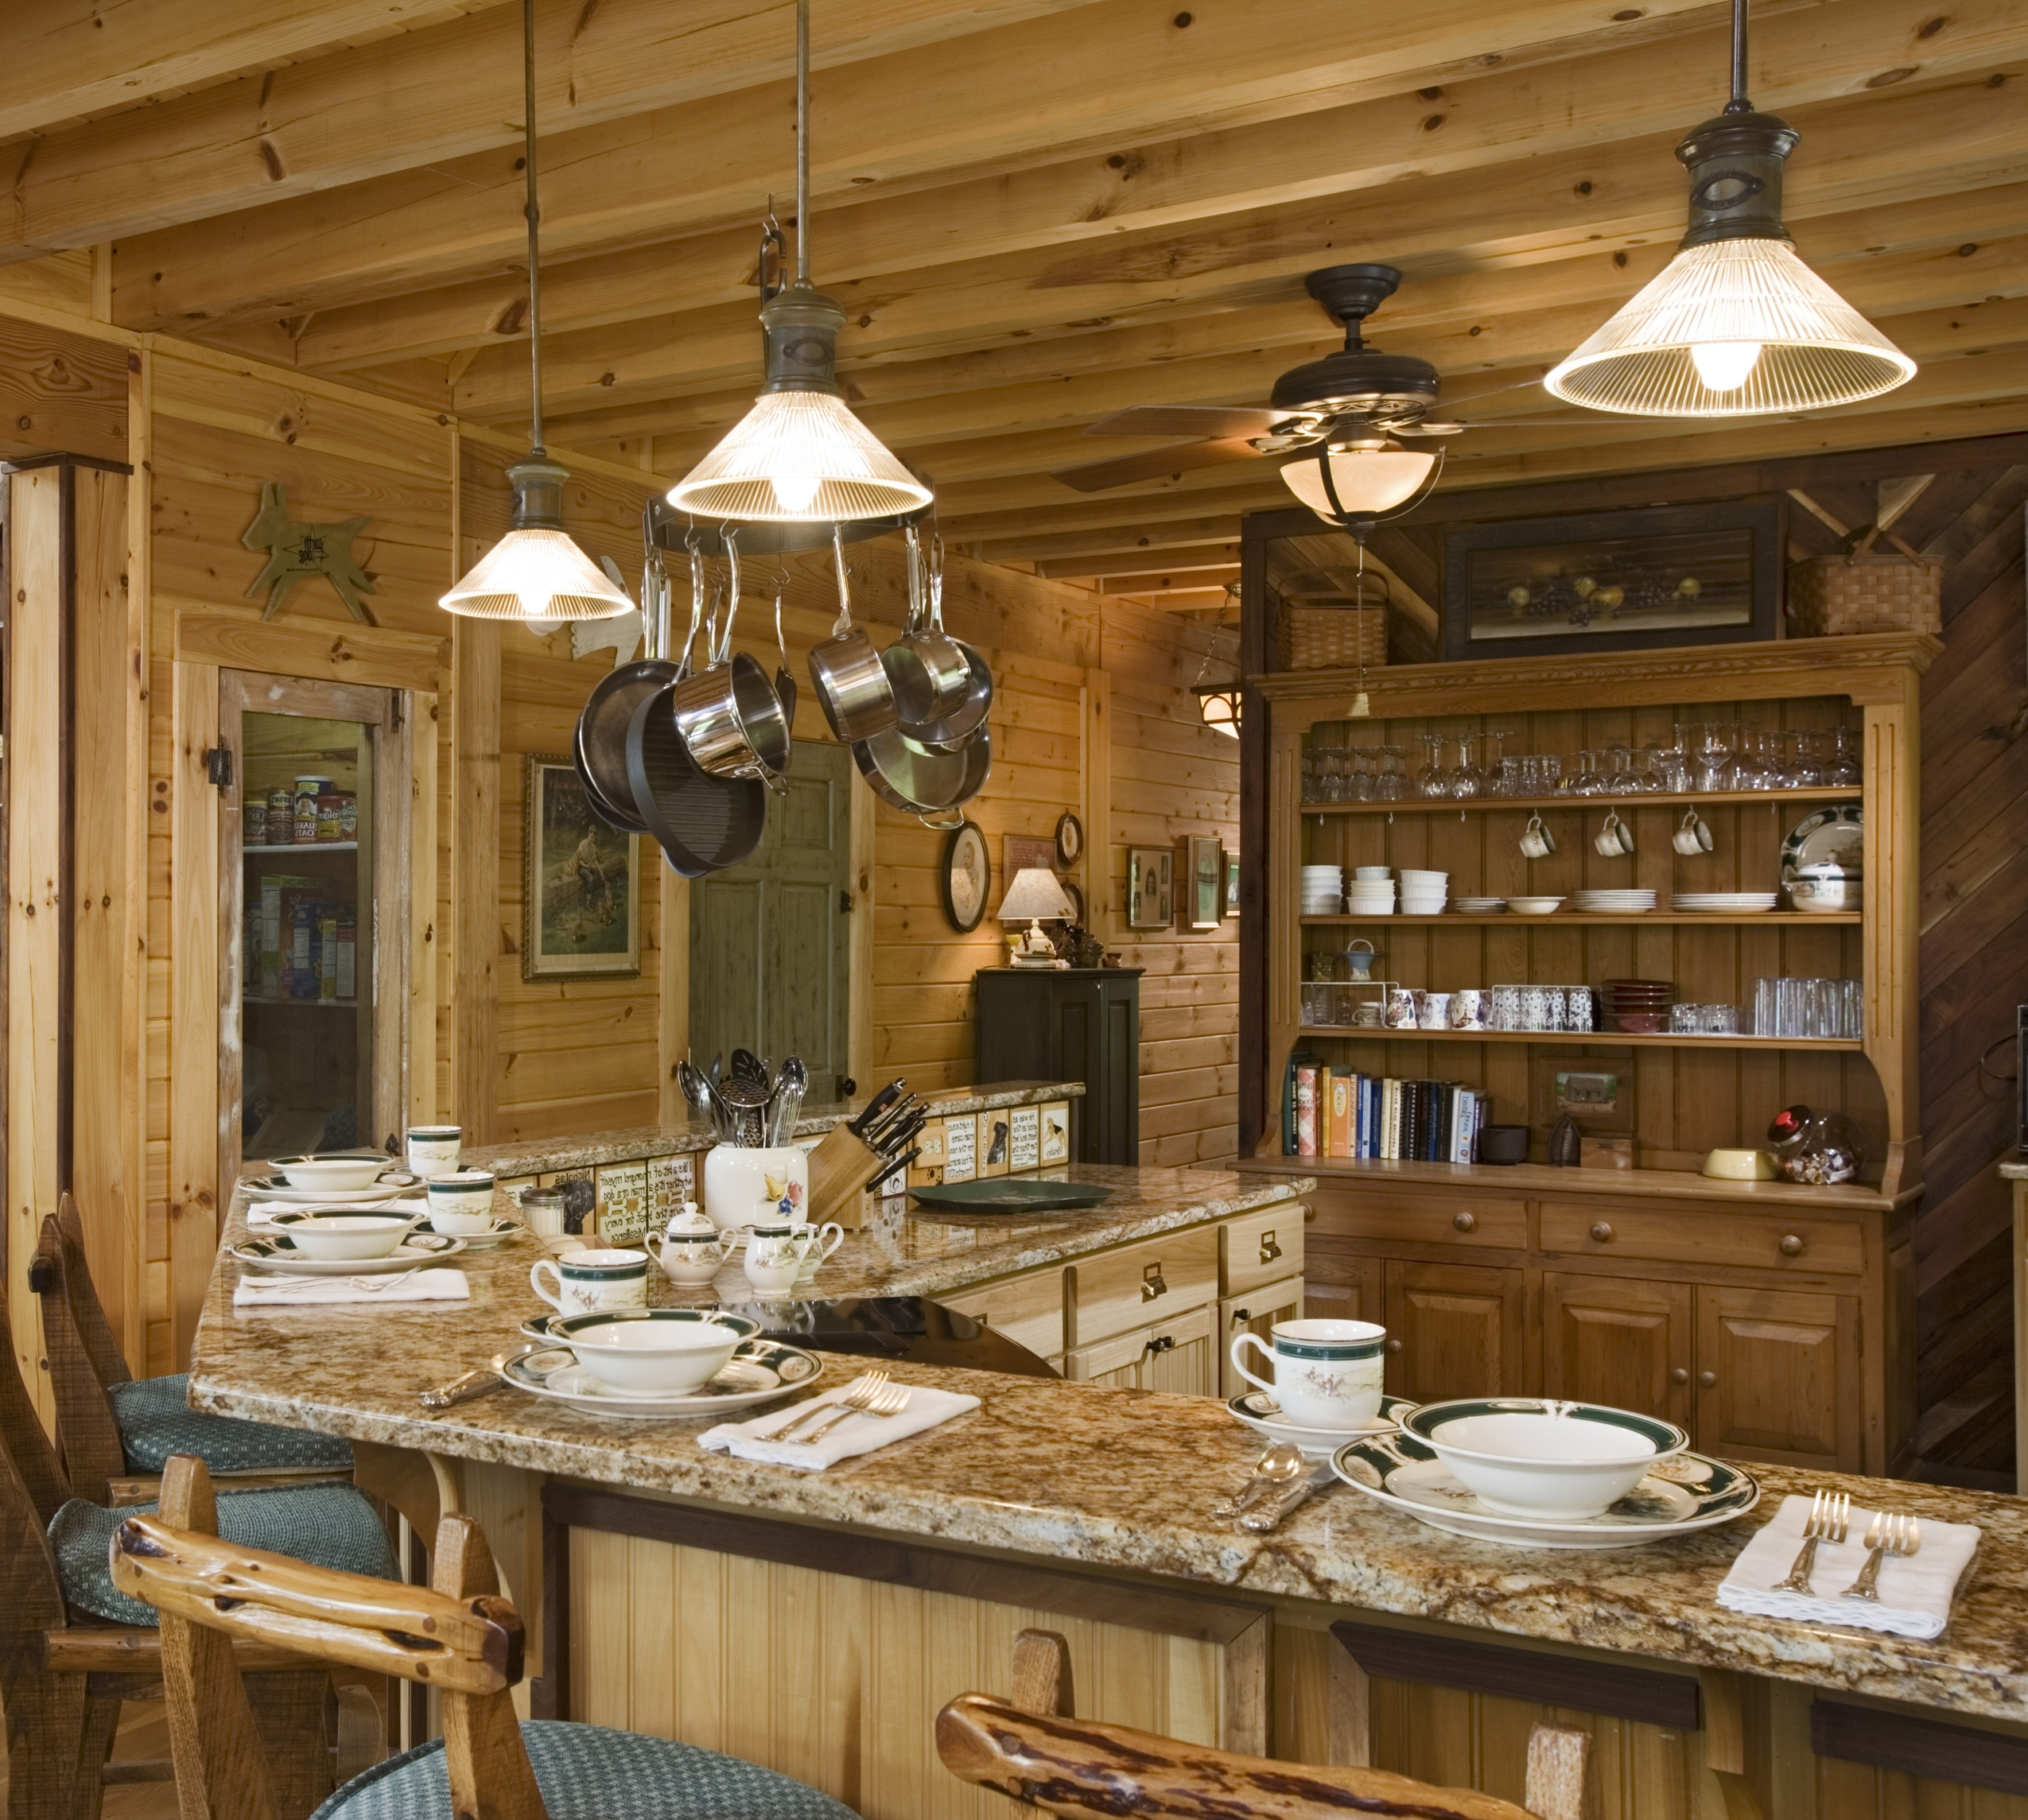 Trendy Chandeliers Design : Awesome Rustic Industrial Chandelier Unique Within Small Rustic Kitchen Chandeliers (View 18 of 20)